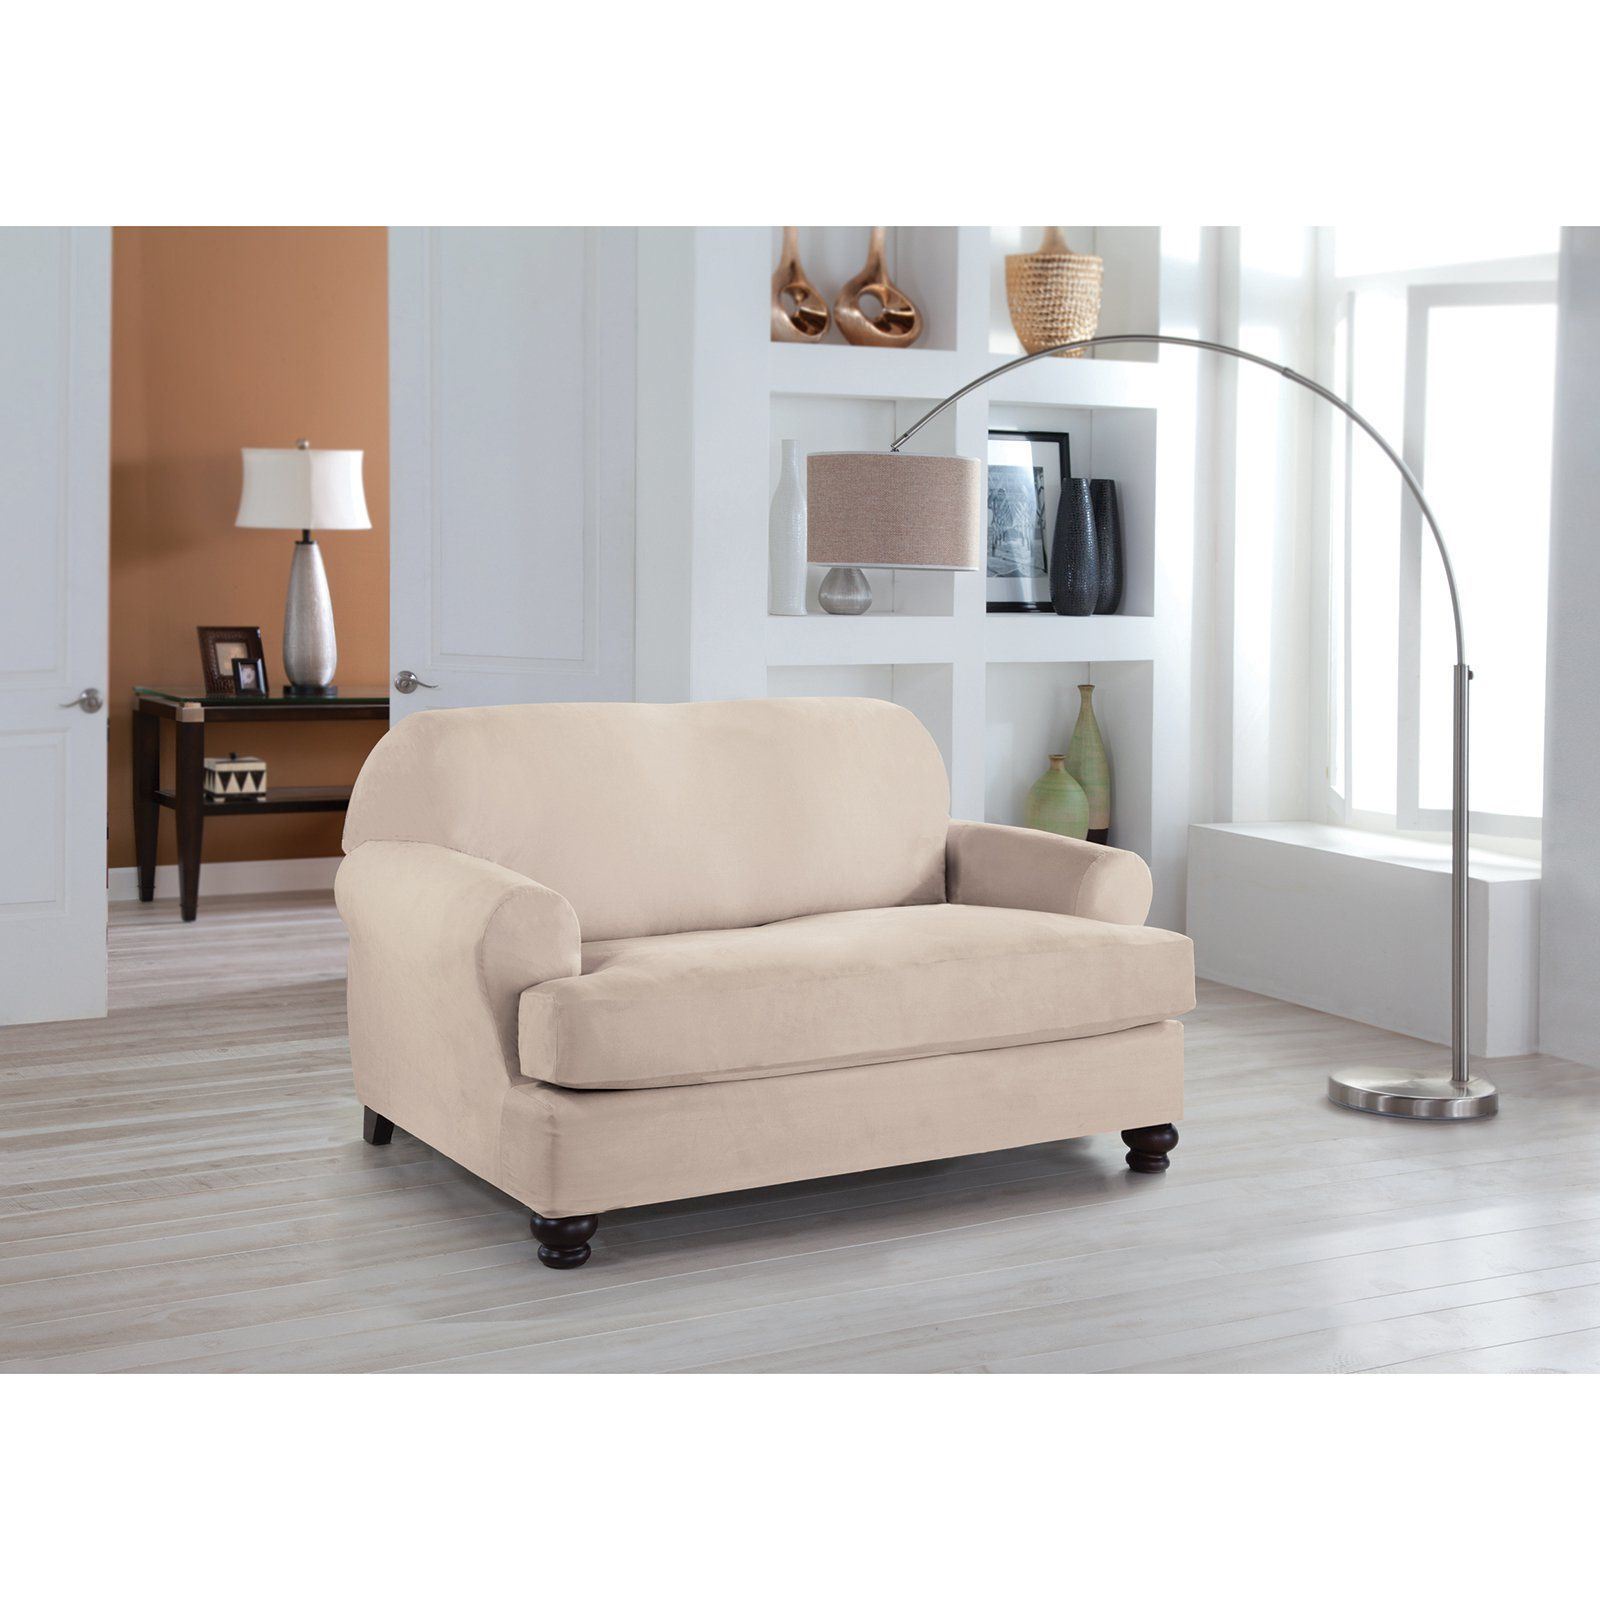 Stretch Fit Loveseat Slipcover 692 254 01 34 011 01